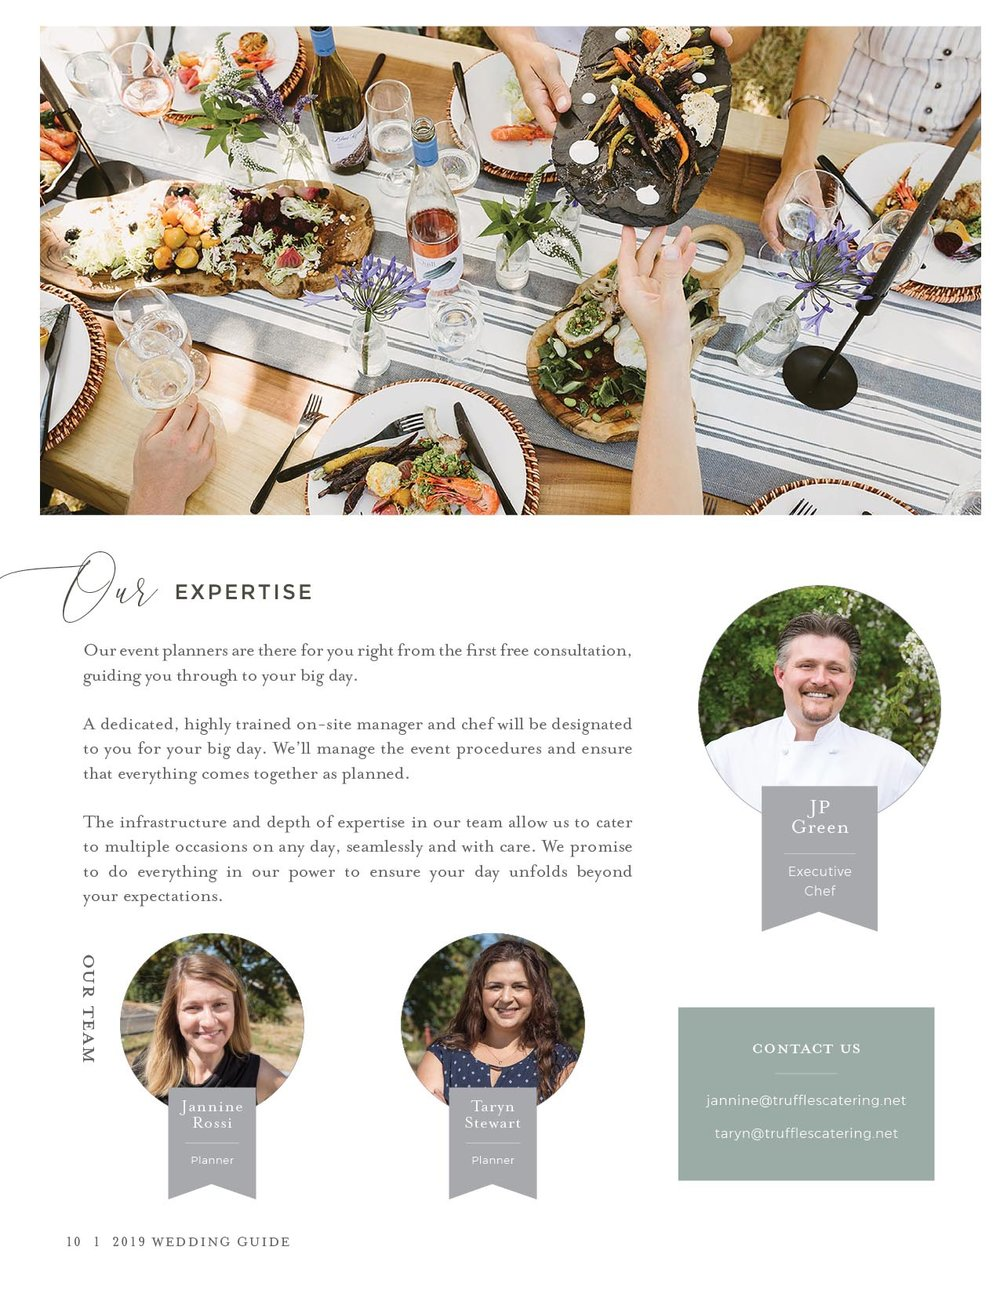 Truffles_weddingGuide_working10.jpg